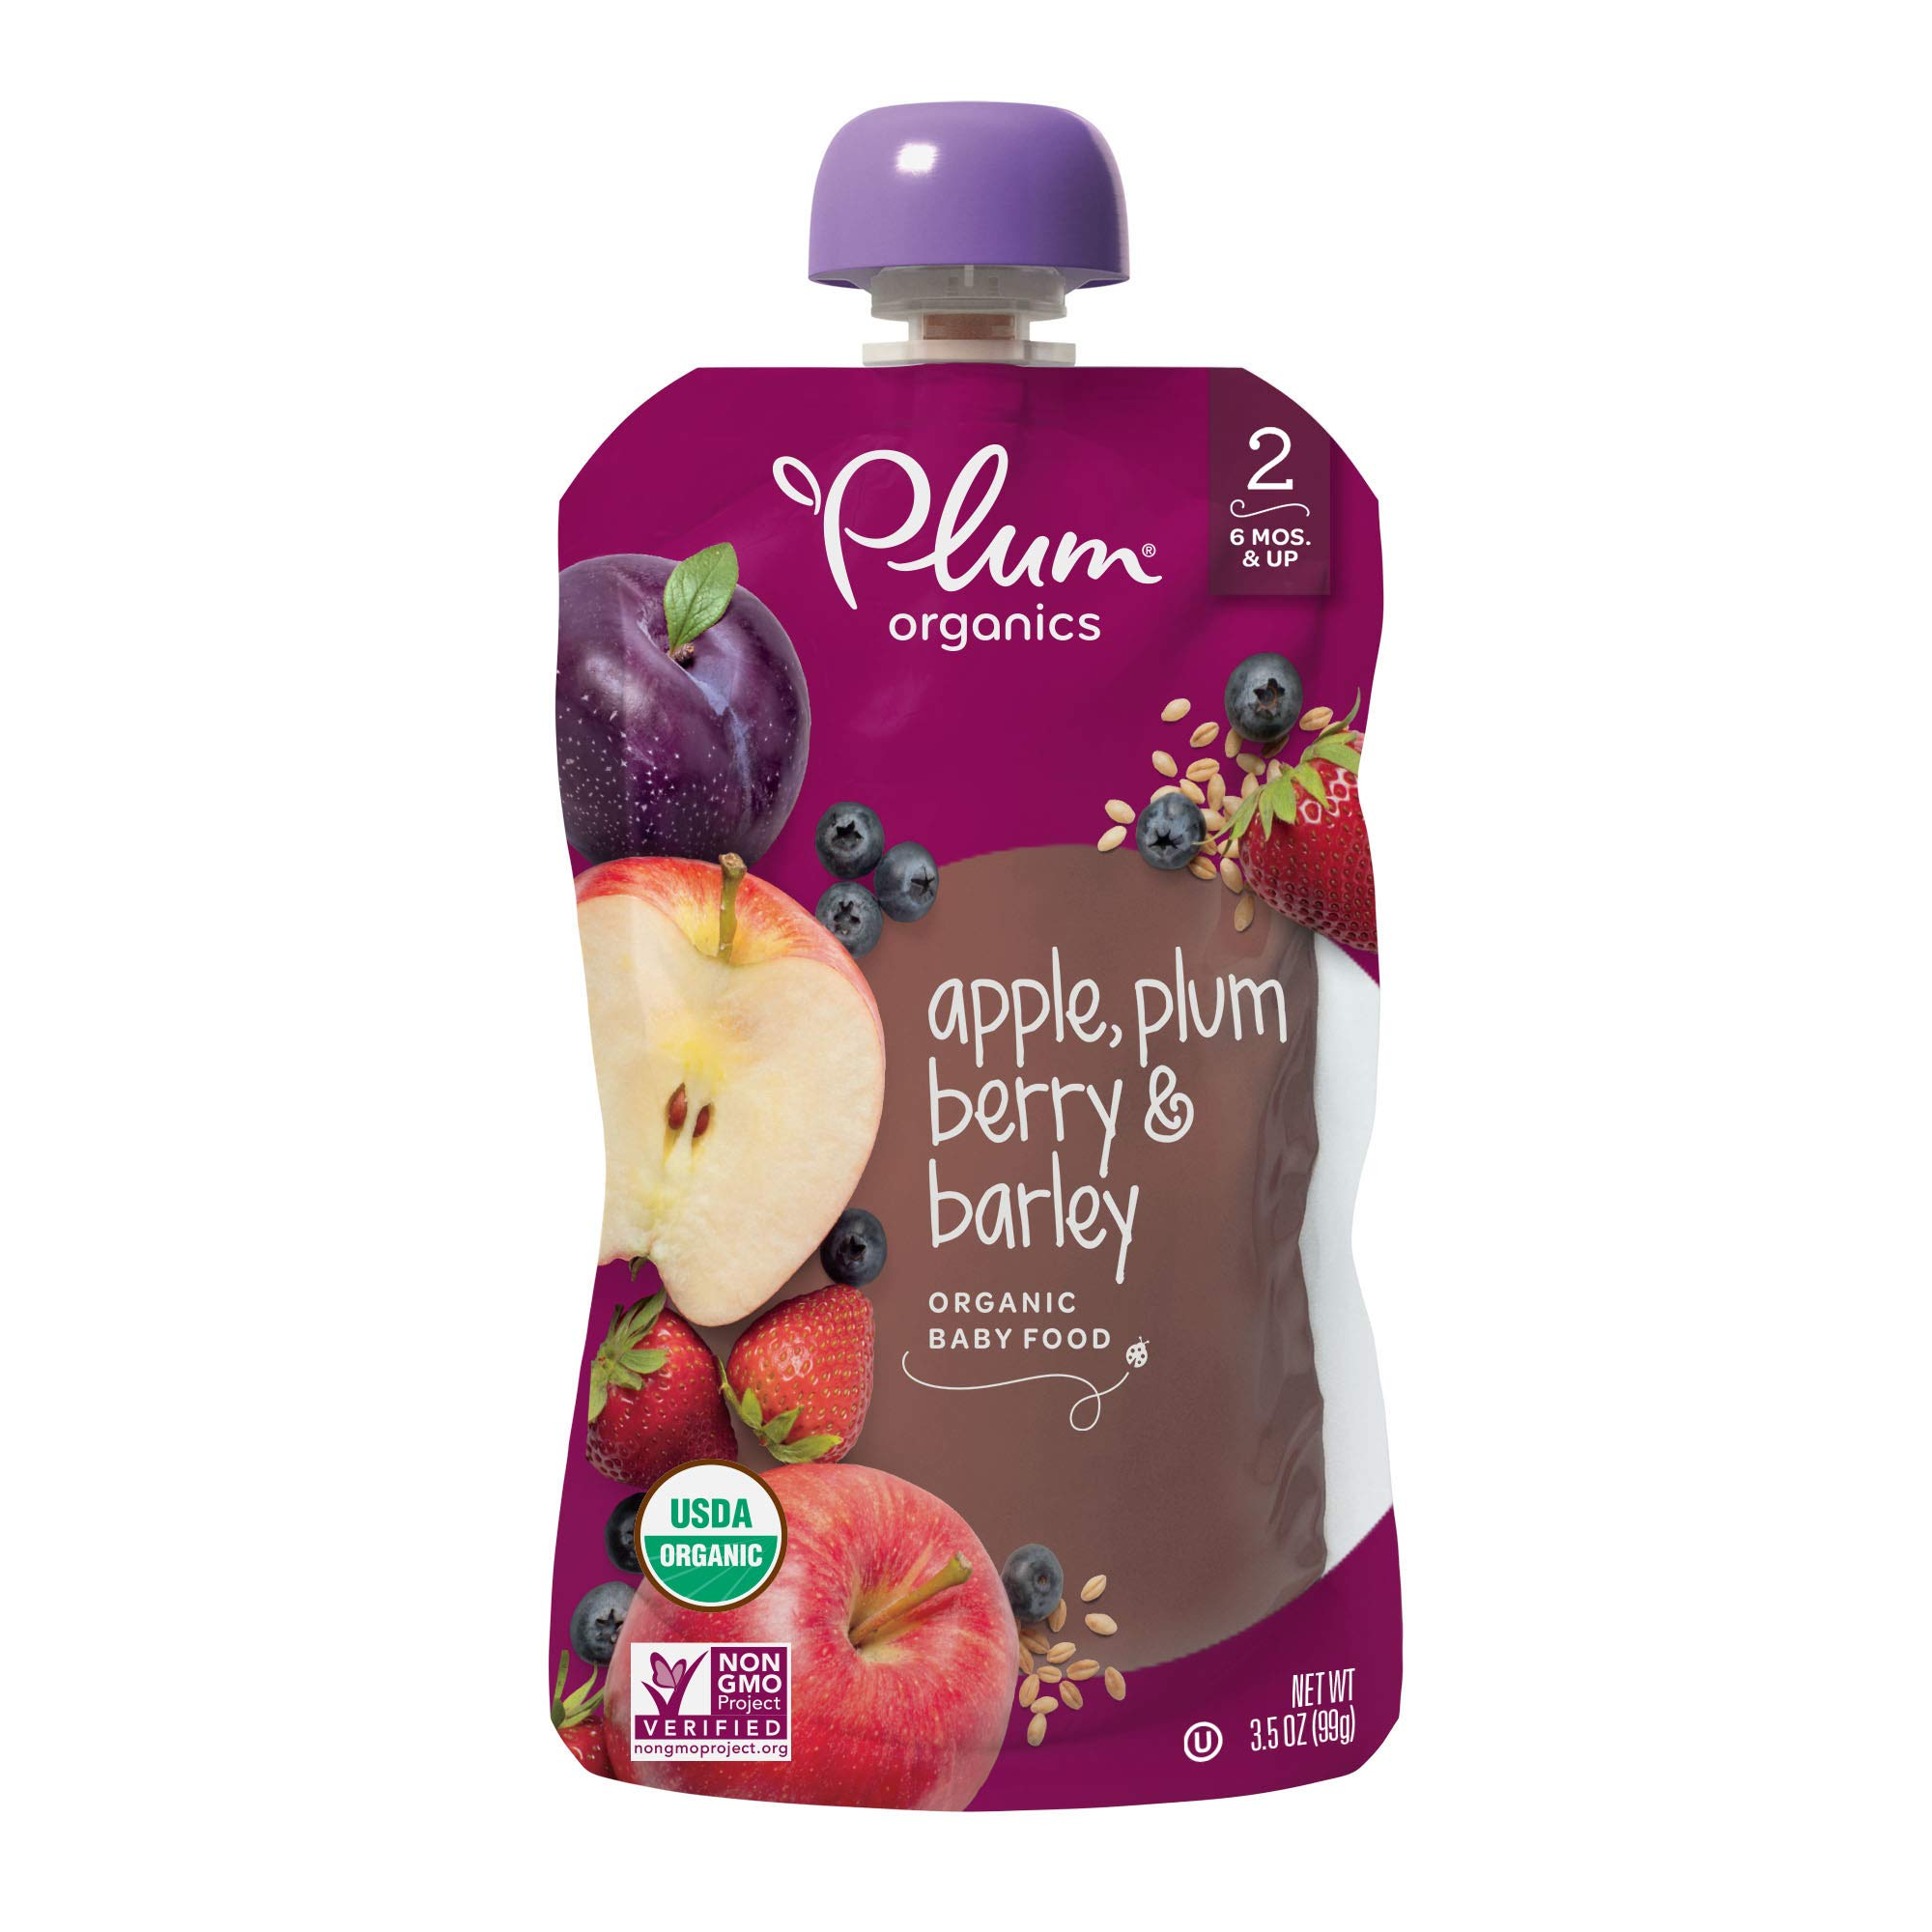 Plum Organics Stage 2, Organic Baby Food, Apple, Plum, Berry and Barley, 3.5 ounce pouches (Pack of 12) (Packaging May Vary)